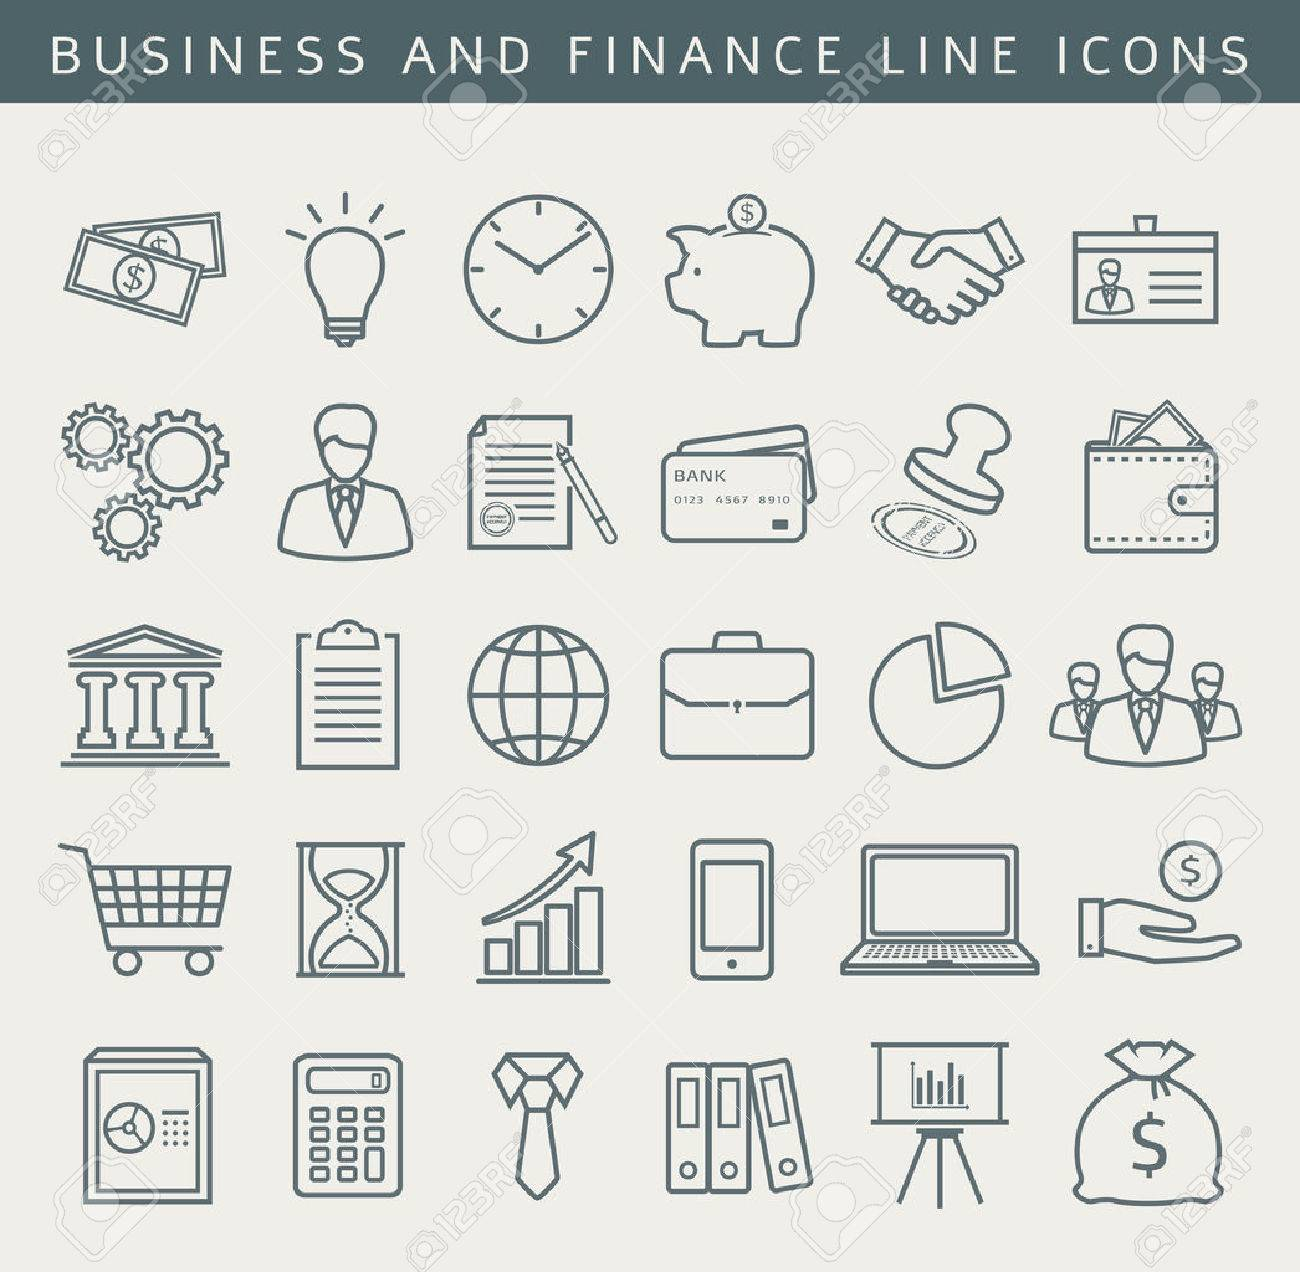 Business, finance, office, shopping and marketing icons. Set of 30 concept symbols. Collection of outline elements for your design. Vector illustration. - 49905842